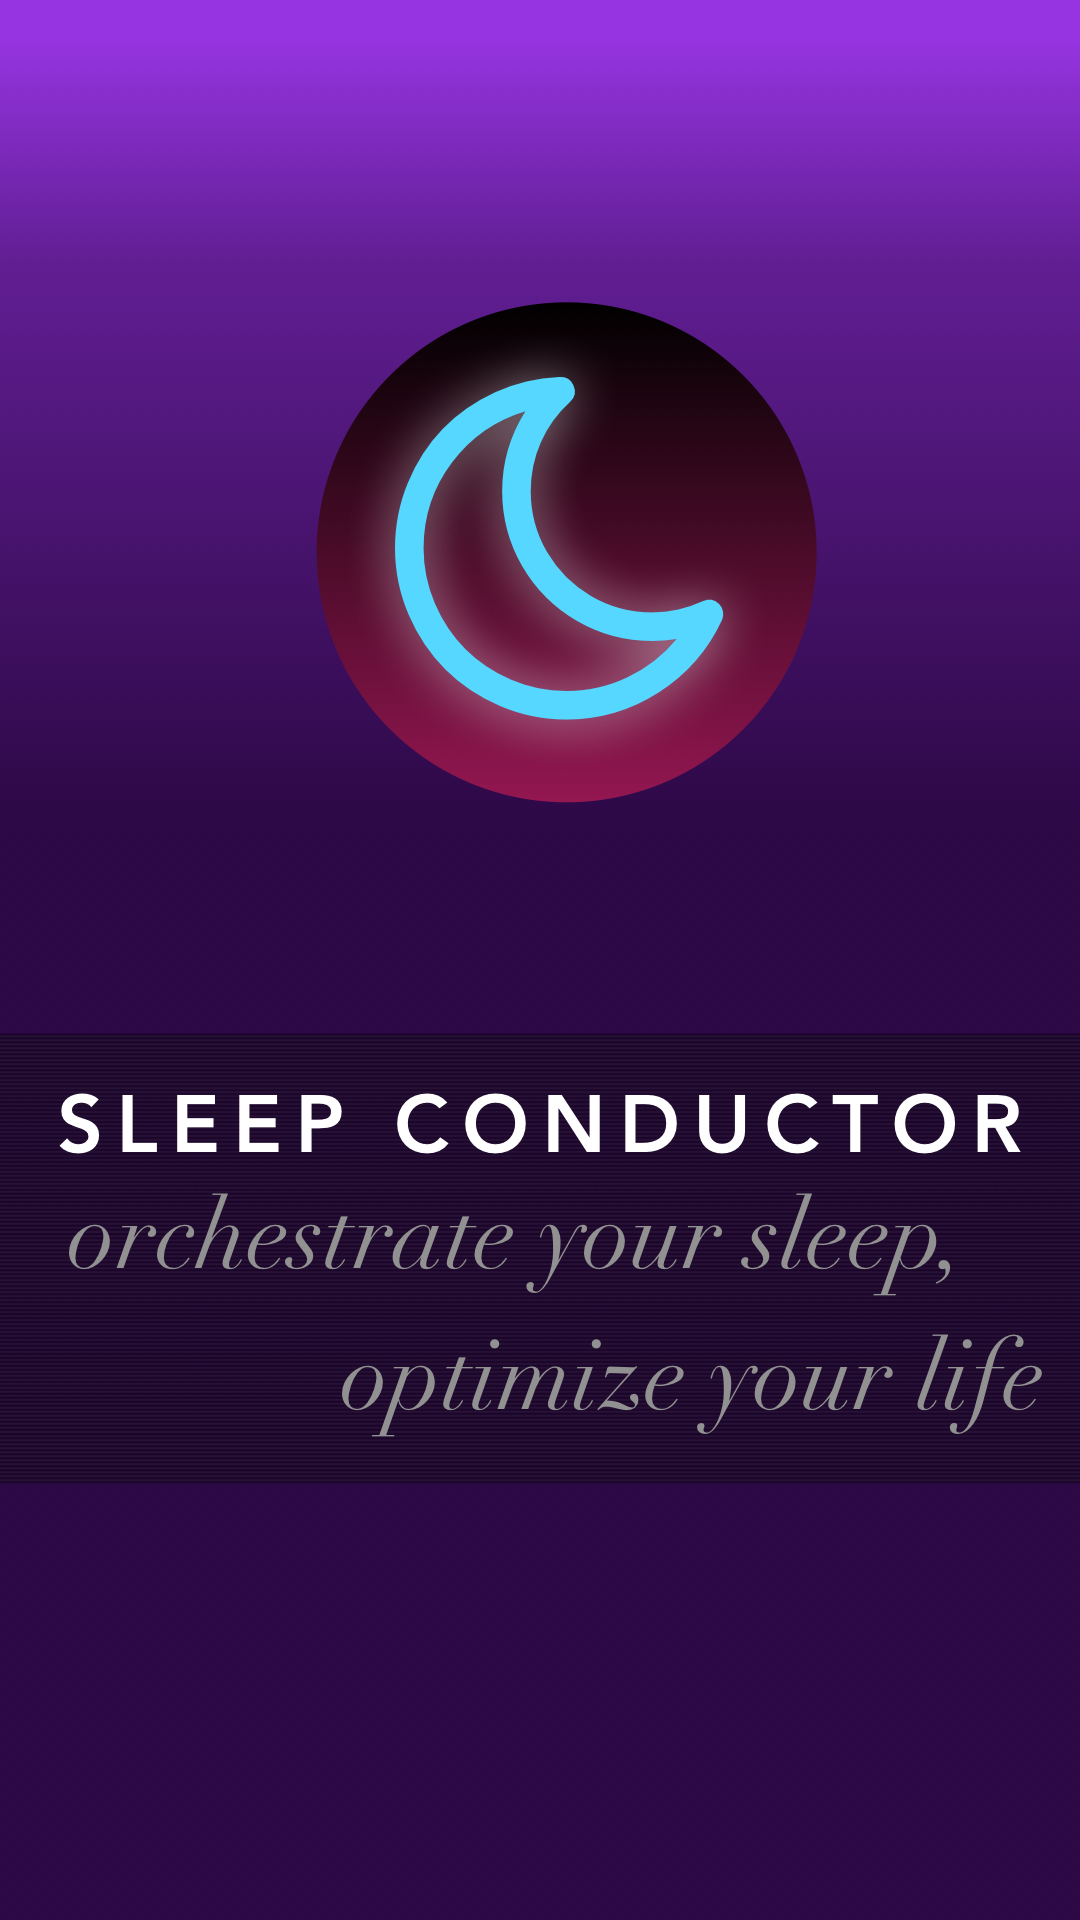 Sleep Conductor | App Prototype for IDEO CoLAB Makeathon 2016